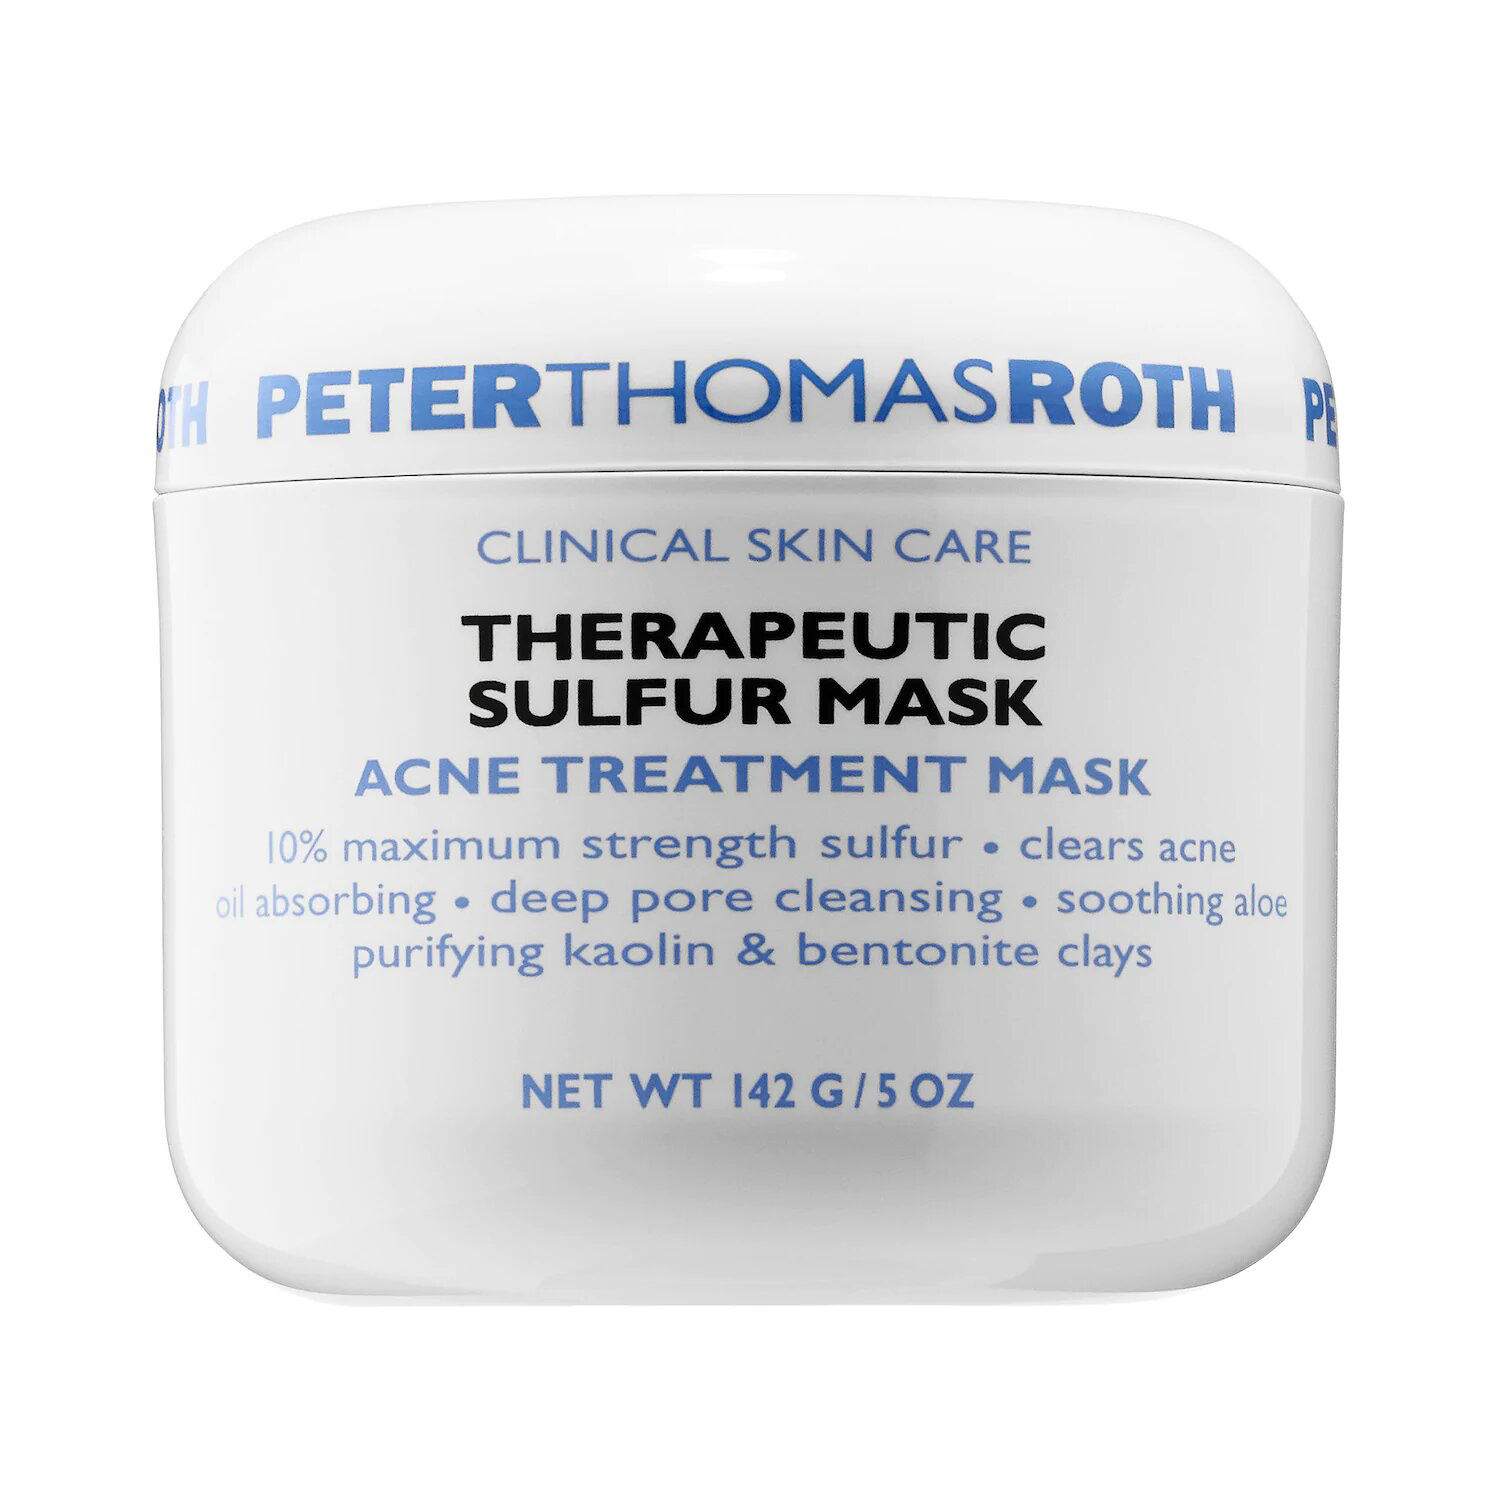 Therapeutic Sulfur Mask Acne Treatment Mask Peter Thomas Roth